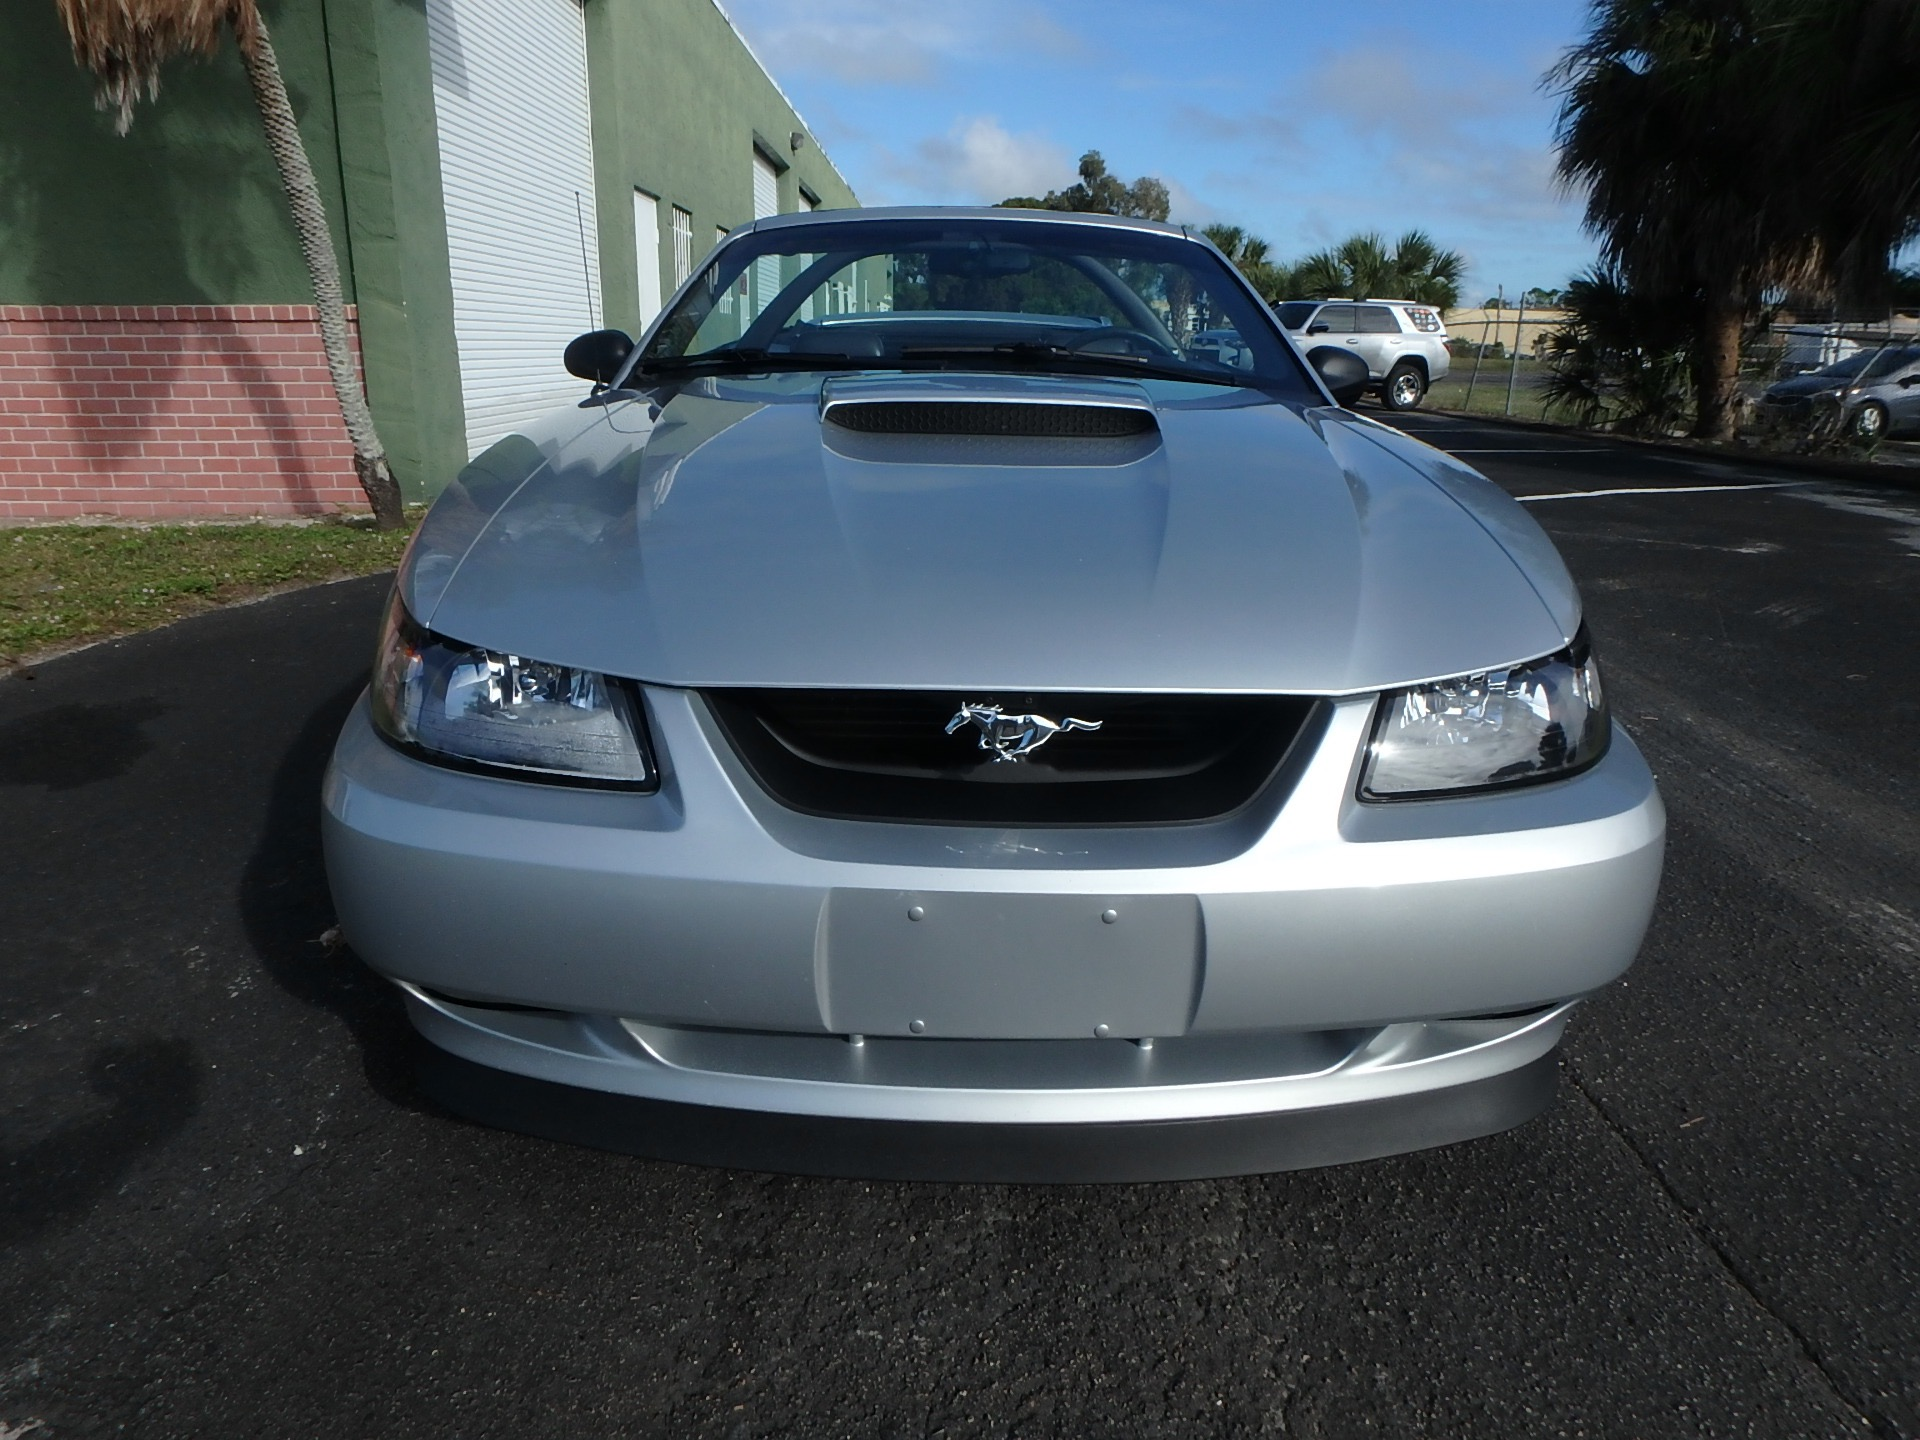 used 2000 ford mustang gt for sale 9 900 rose motorsports inc stock 2422 used 2000 ford mustang gt for sale 9